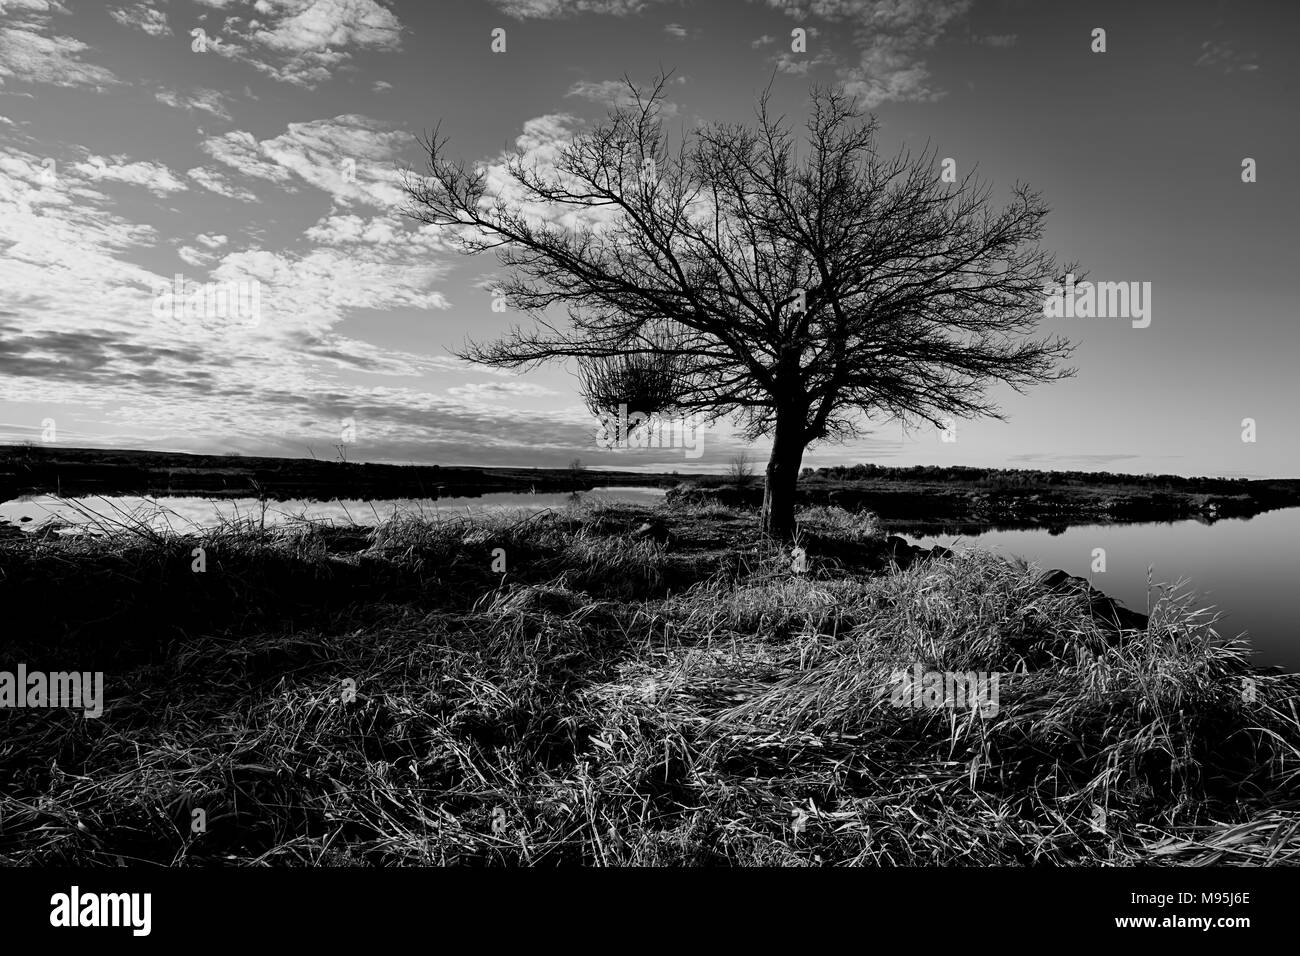 A scenic B&W image of a barren tree by the water at Scooteny Reservoir near Othello, Washington. - Stock Image